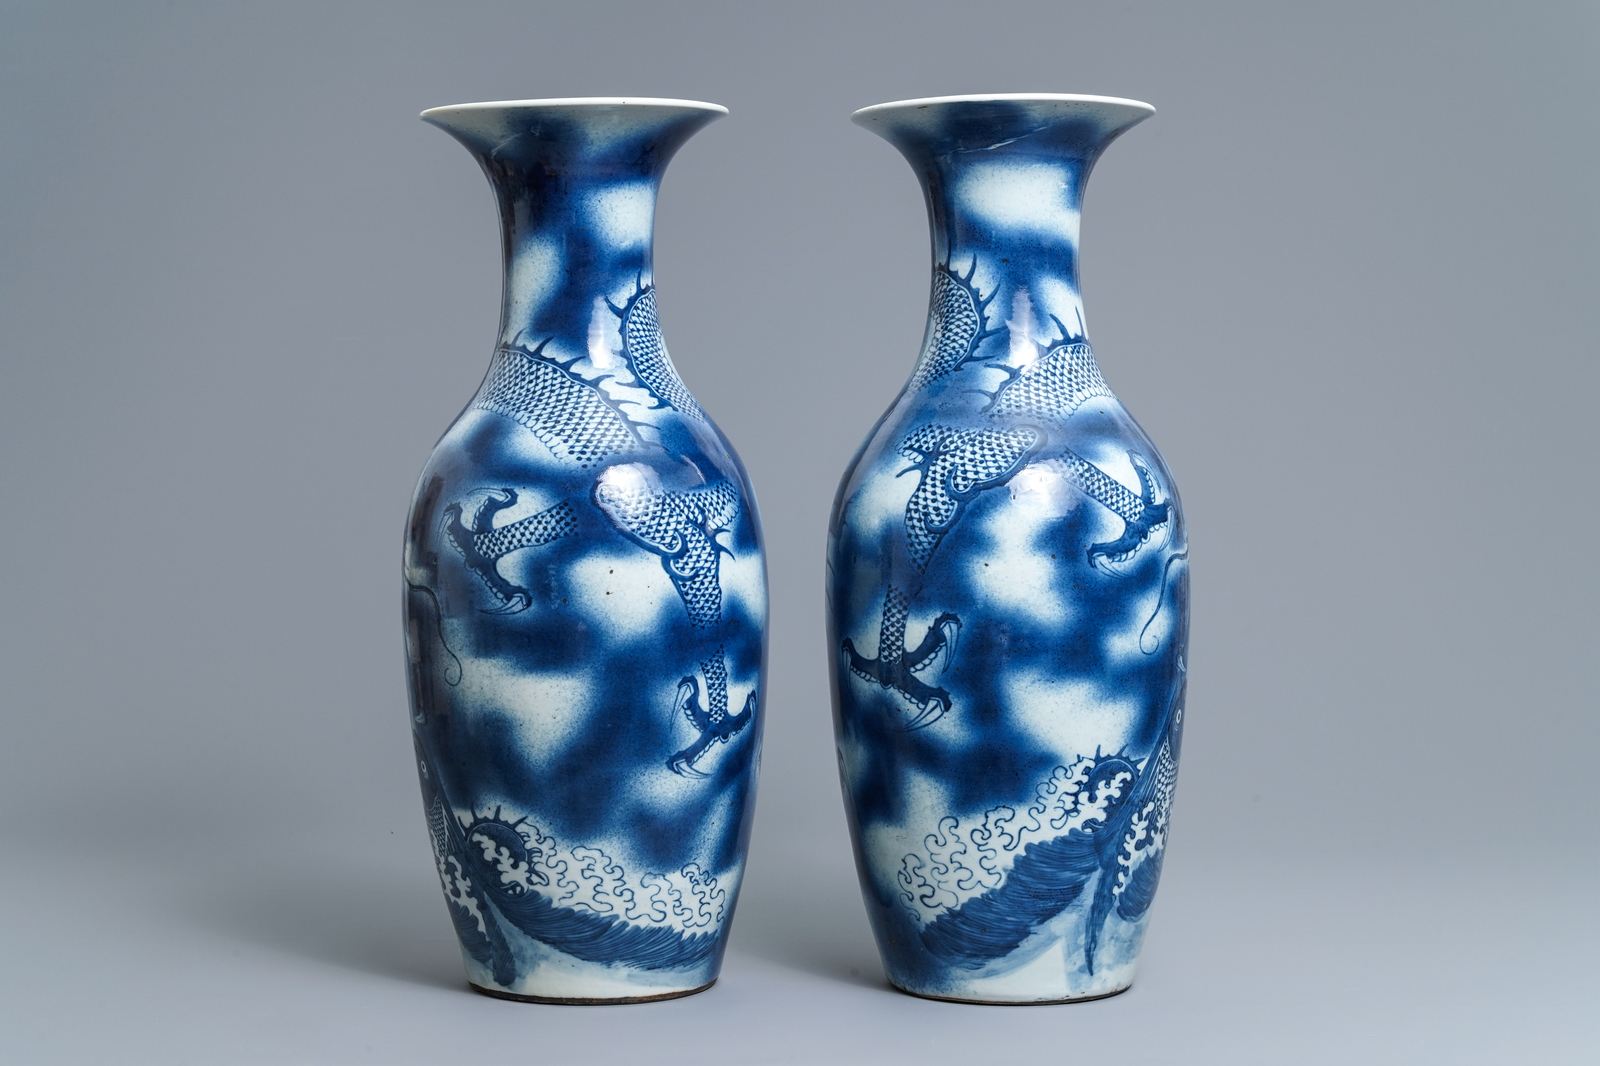 Lot 62 - A pair of Chinese blue and white 'dragon and carp' vases, 19th C.